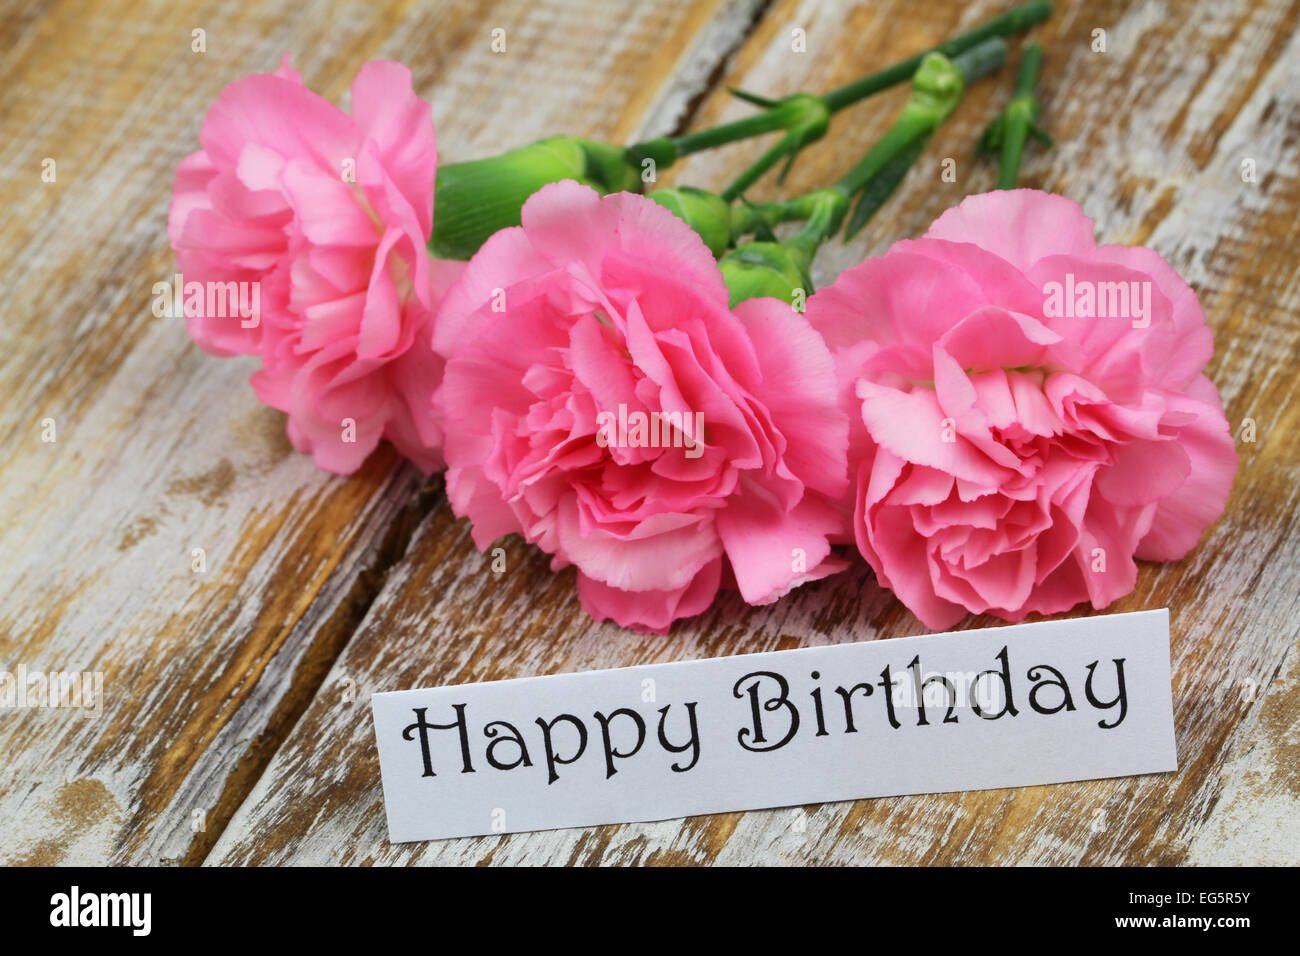 happy birthday card with pink carnation flowers stock photo, Birthday card